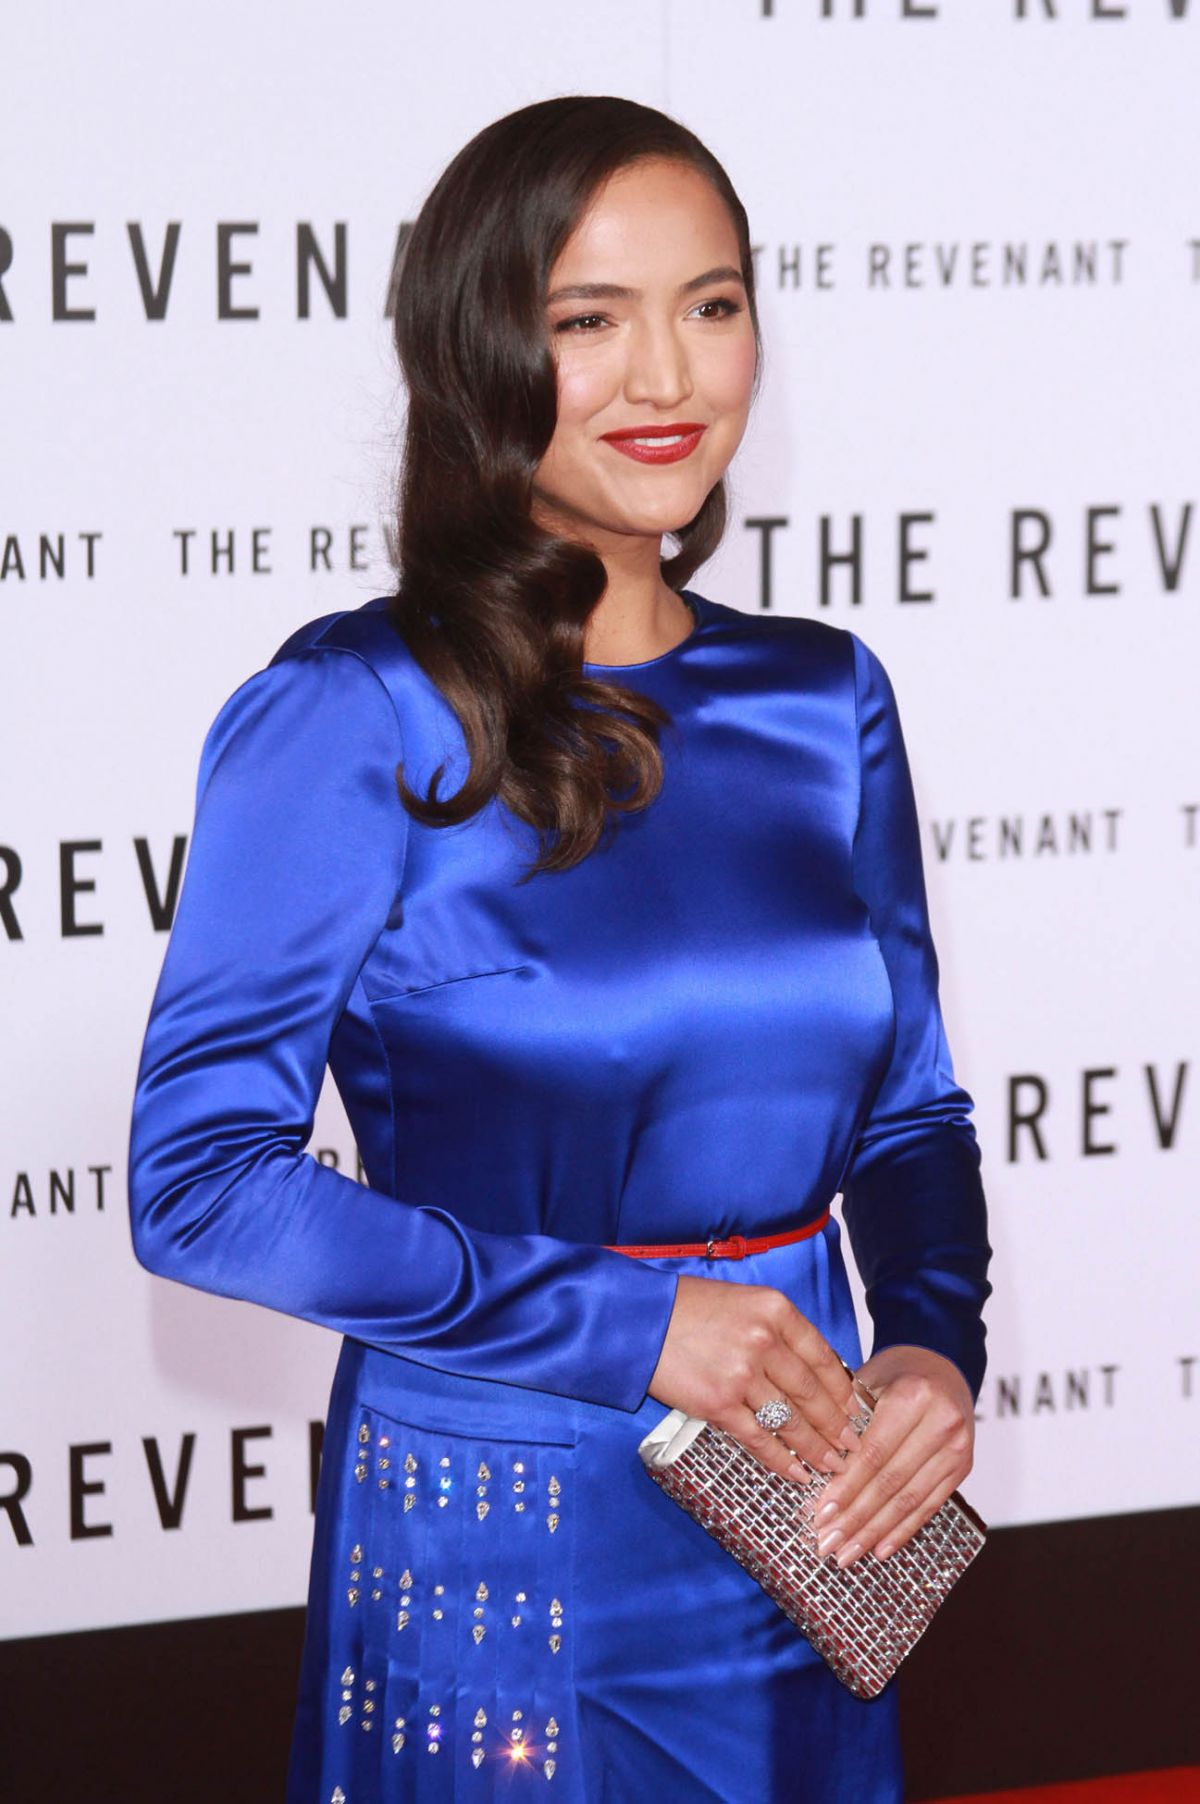 GRACE DOVE at The Revenant Premiere in Hollywood 12/16/2015